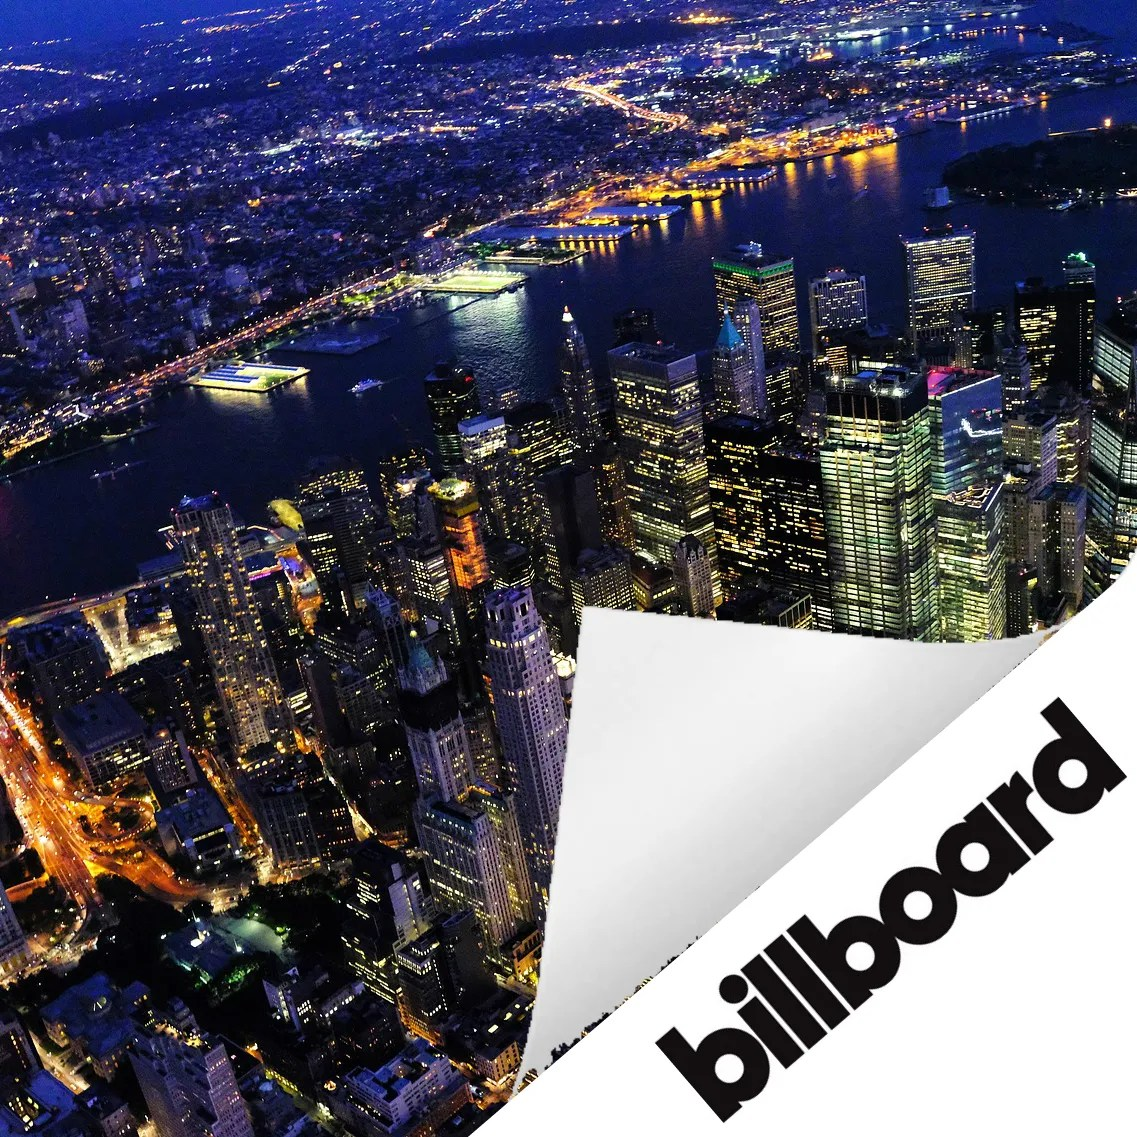 Billboard Features Tunedly Following New Appointments